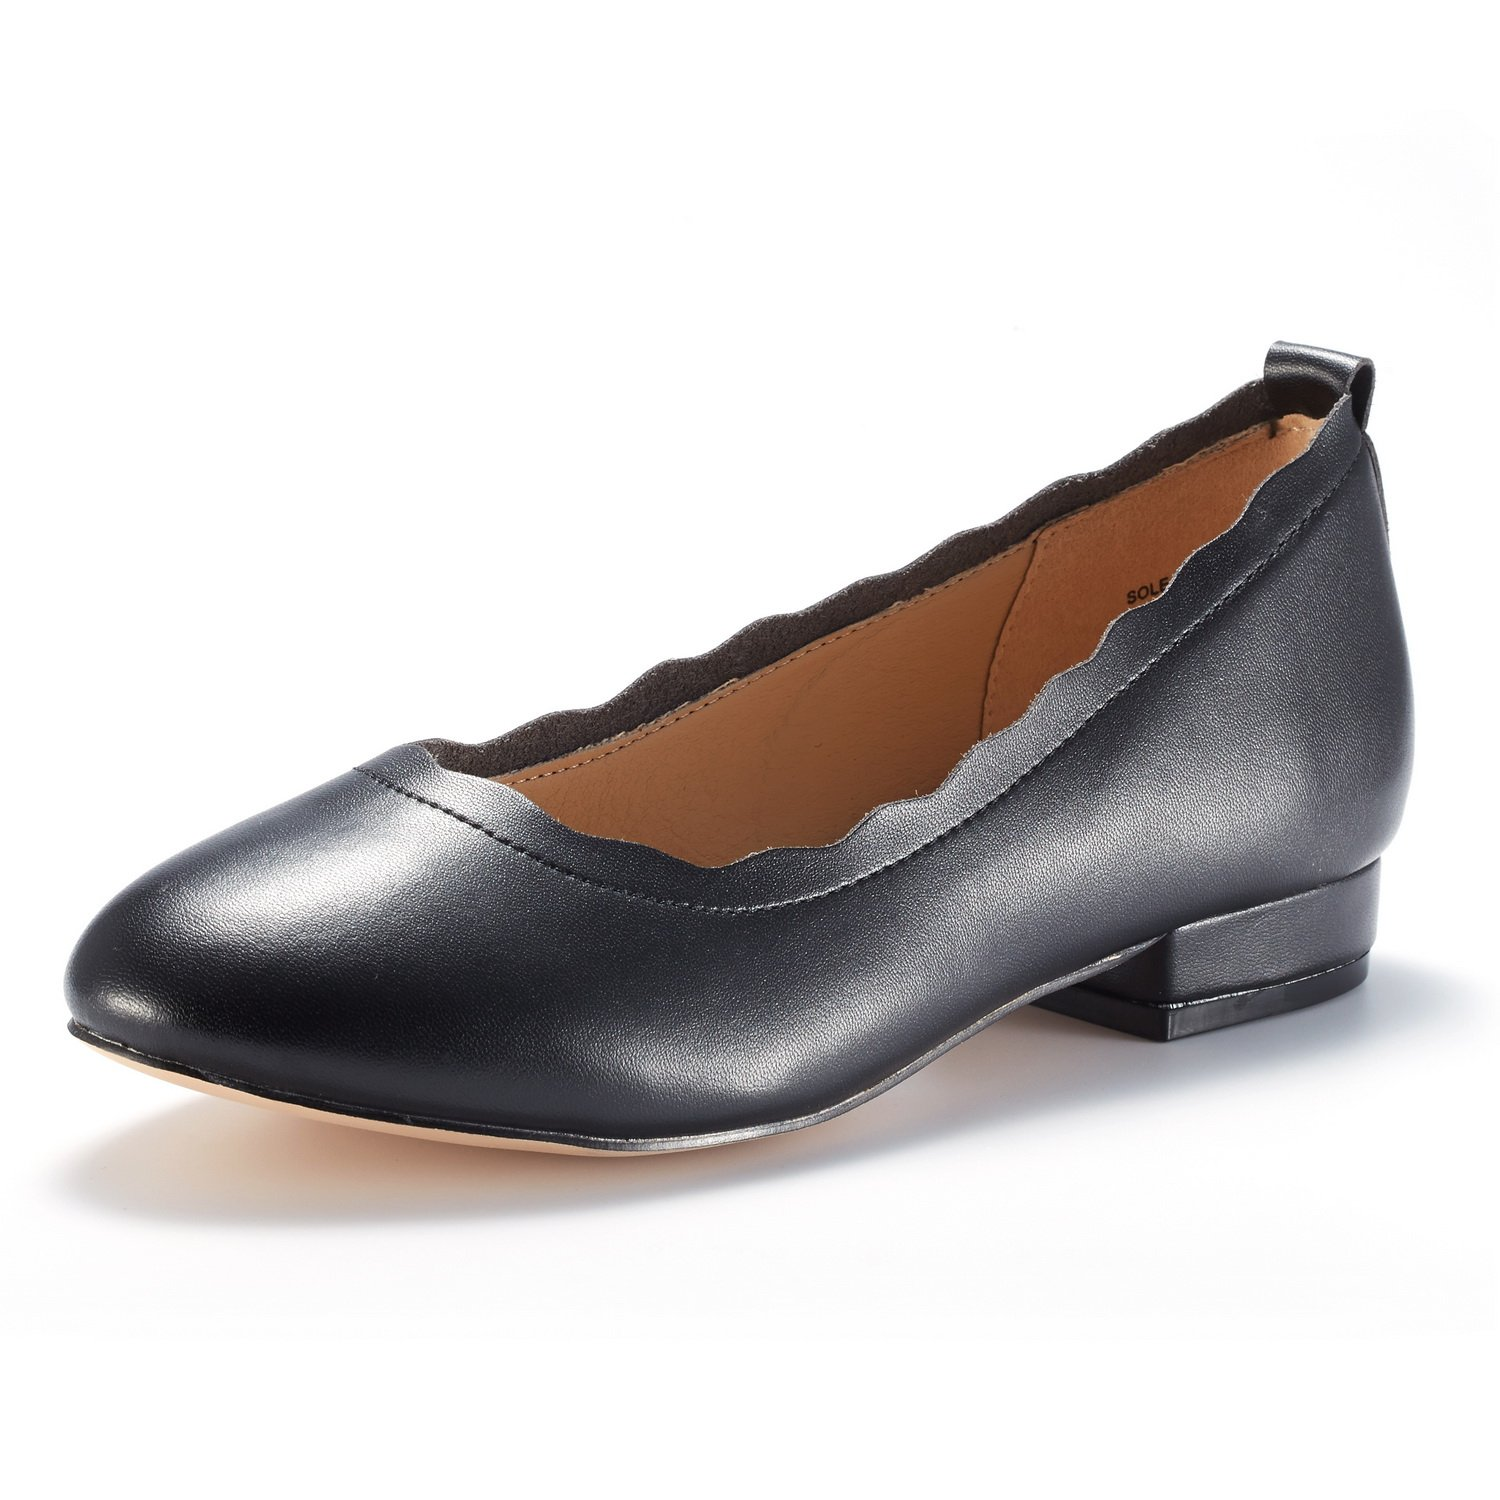 DREAM PAIRS Women's Sole_Elle Black/PU Fashion Low Stacked Slip On Flats Shoes Size 8.5 M US